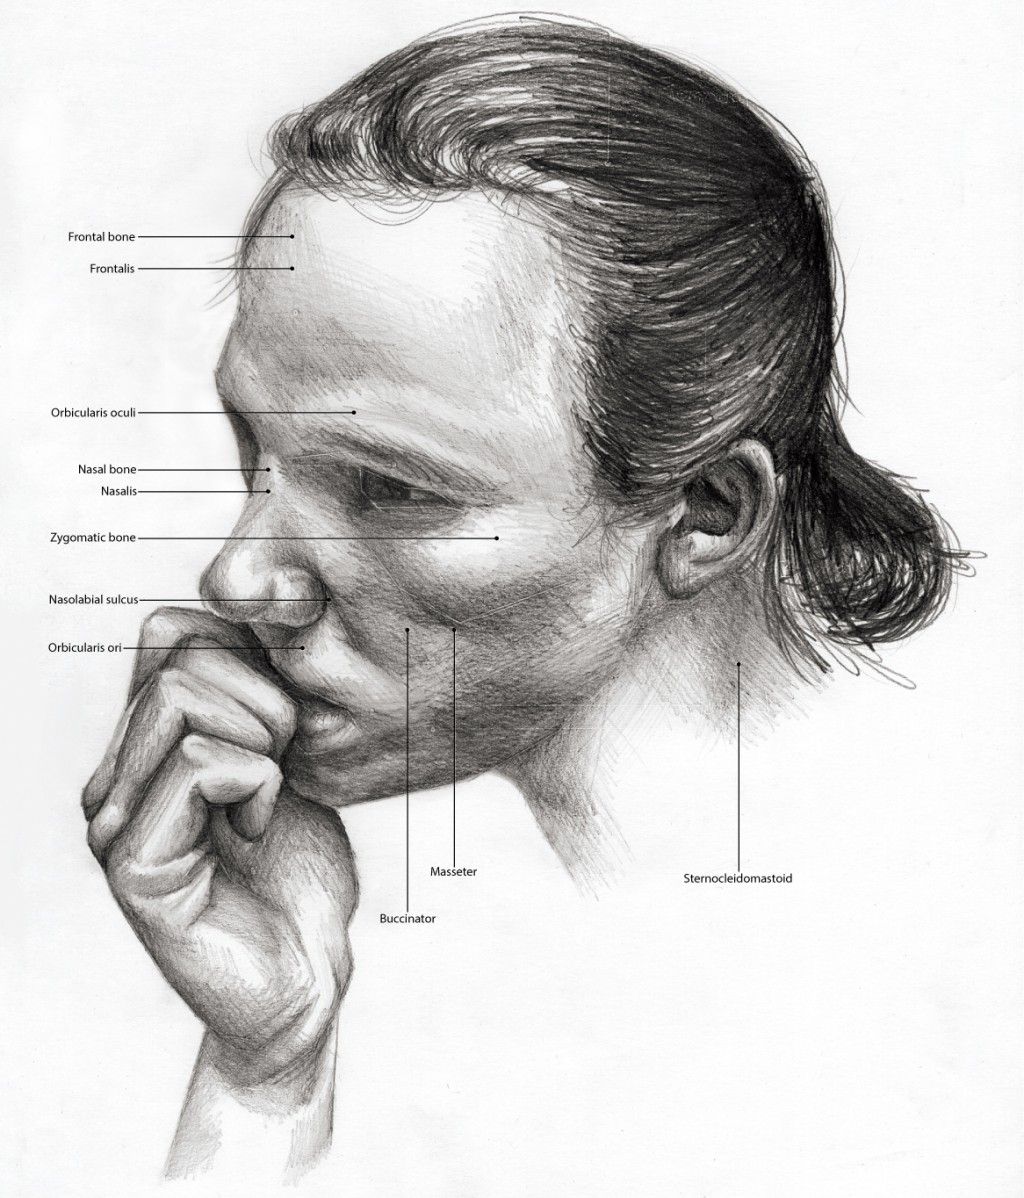 Black and White illustration of someone biting their nails. Anatomical features labeled.